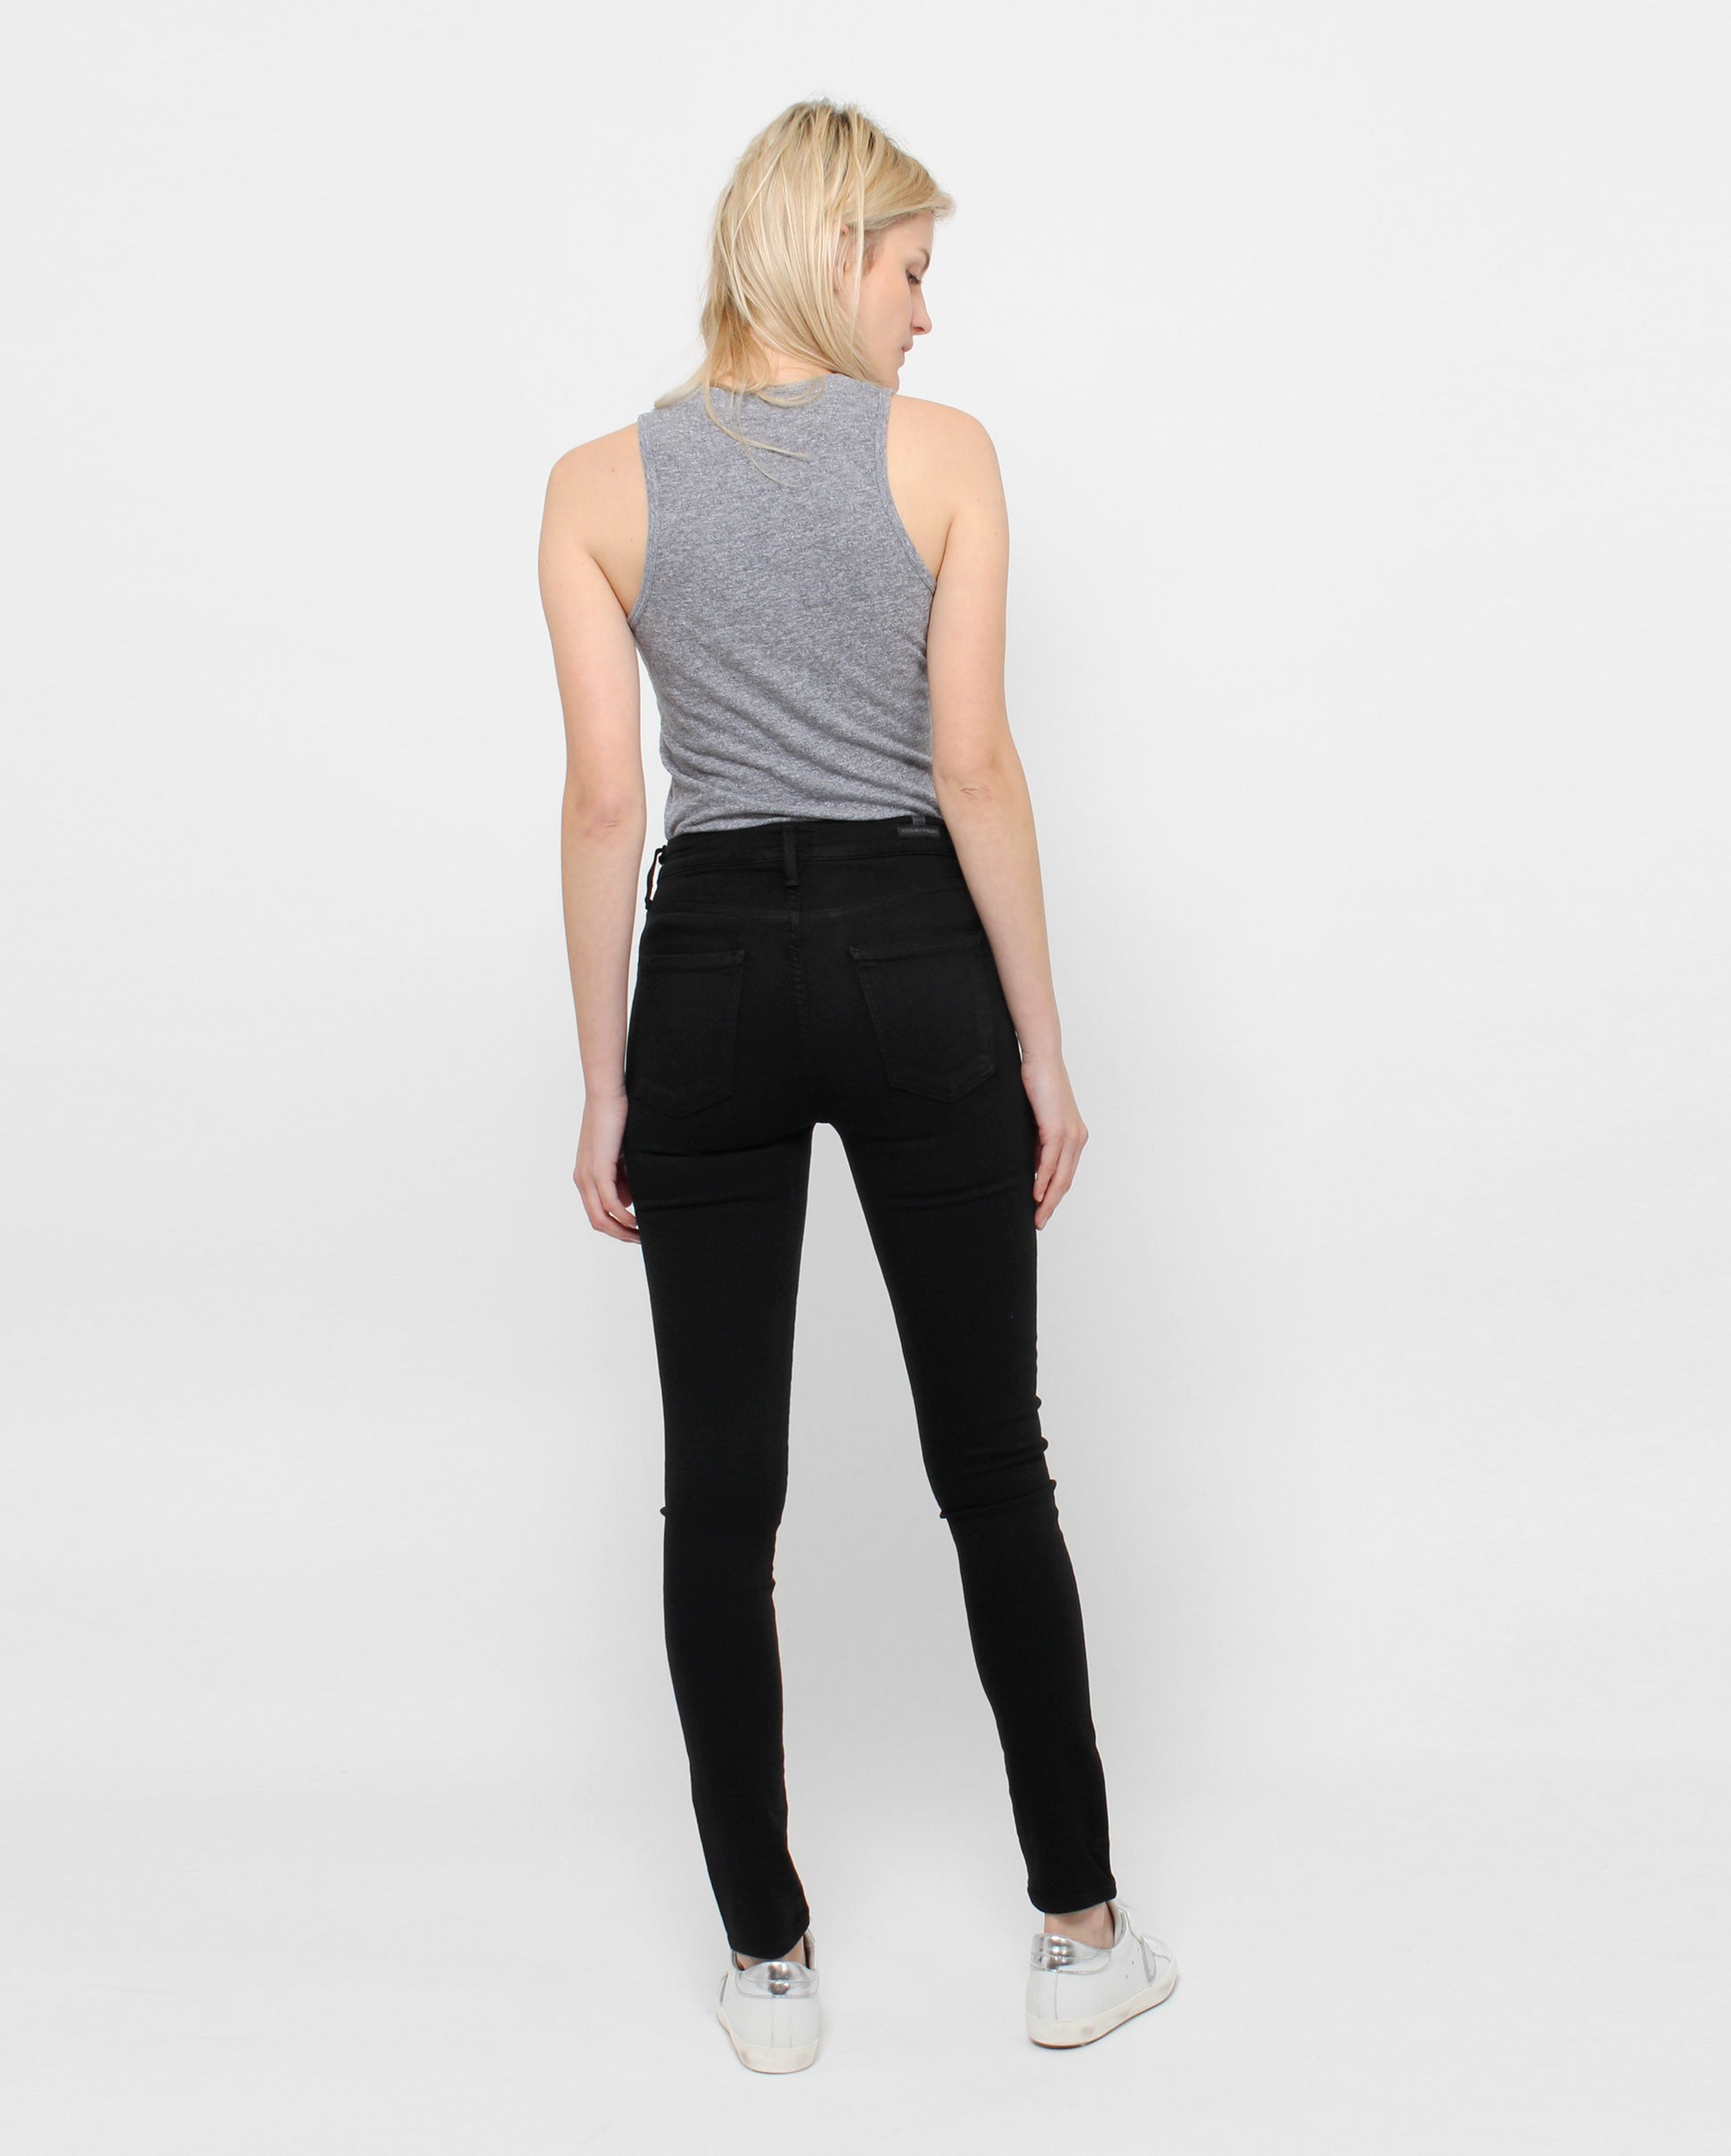 ROCKET HIGH RISE SKINNY / ALL BLACK